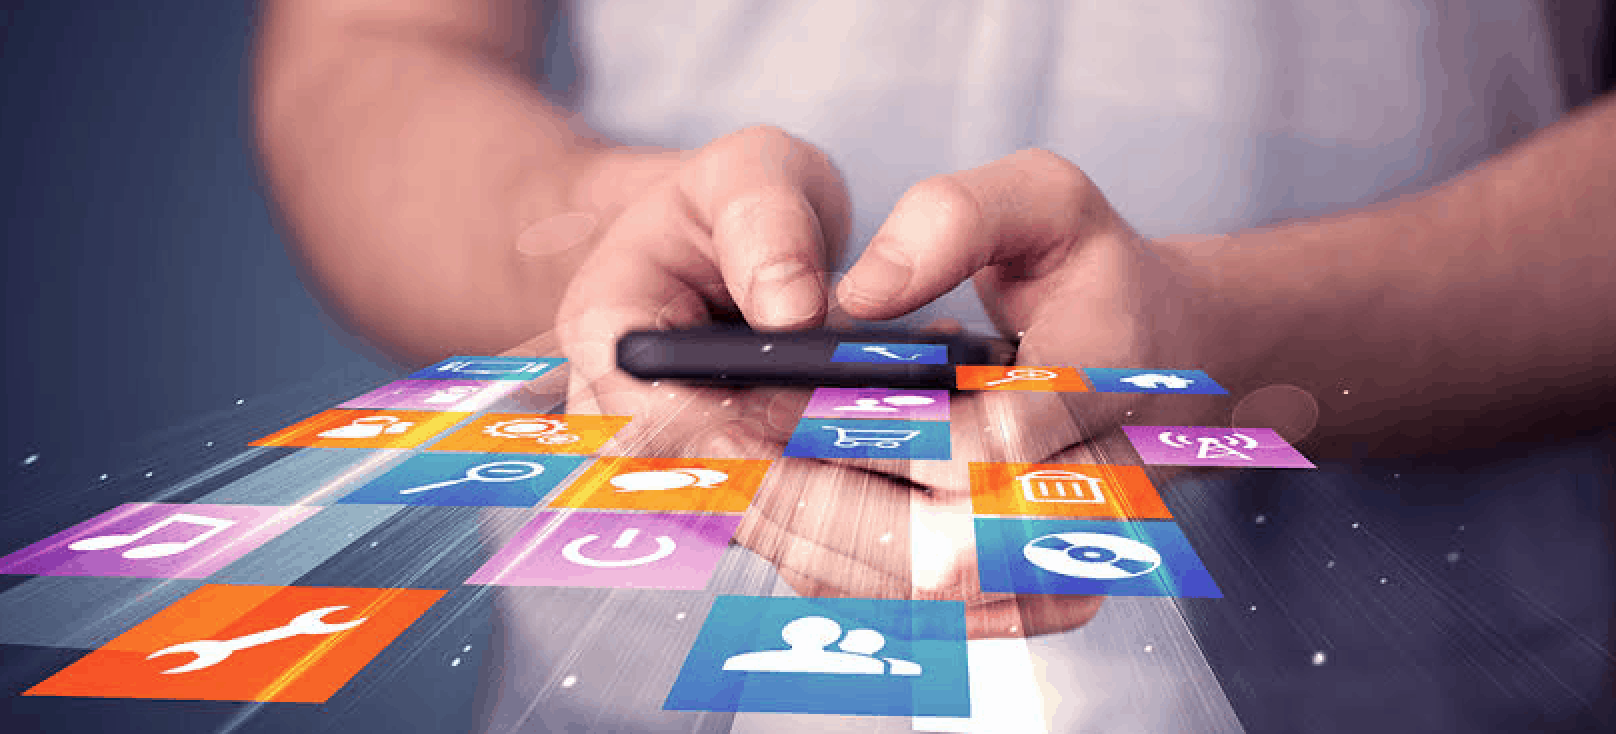 Mobile Apps and Their Impact on Our Future